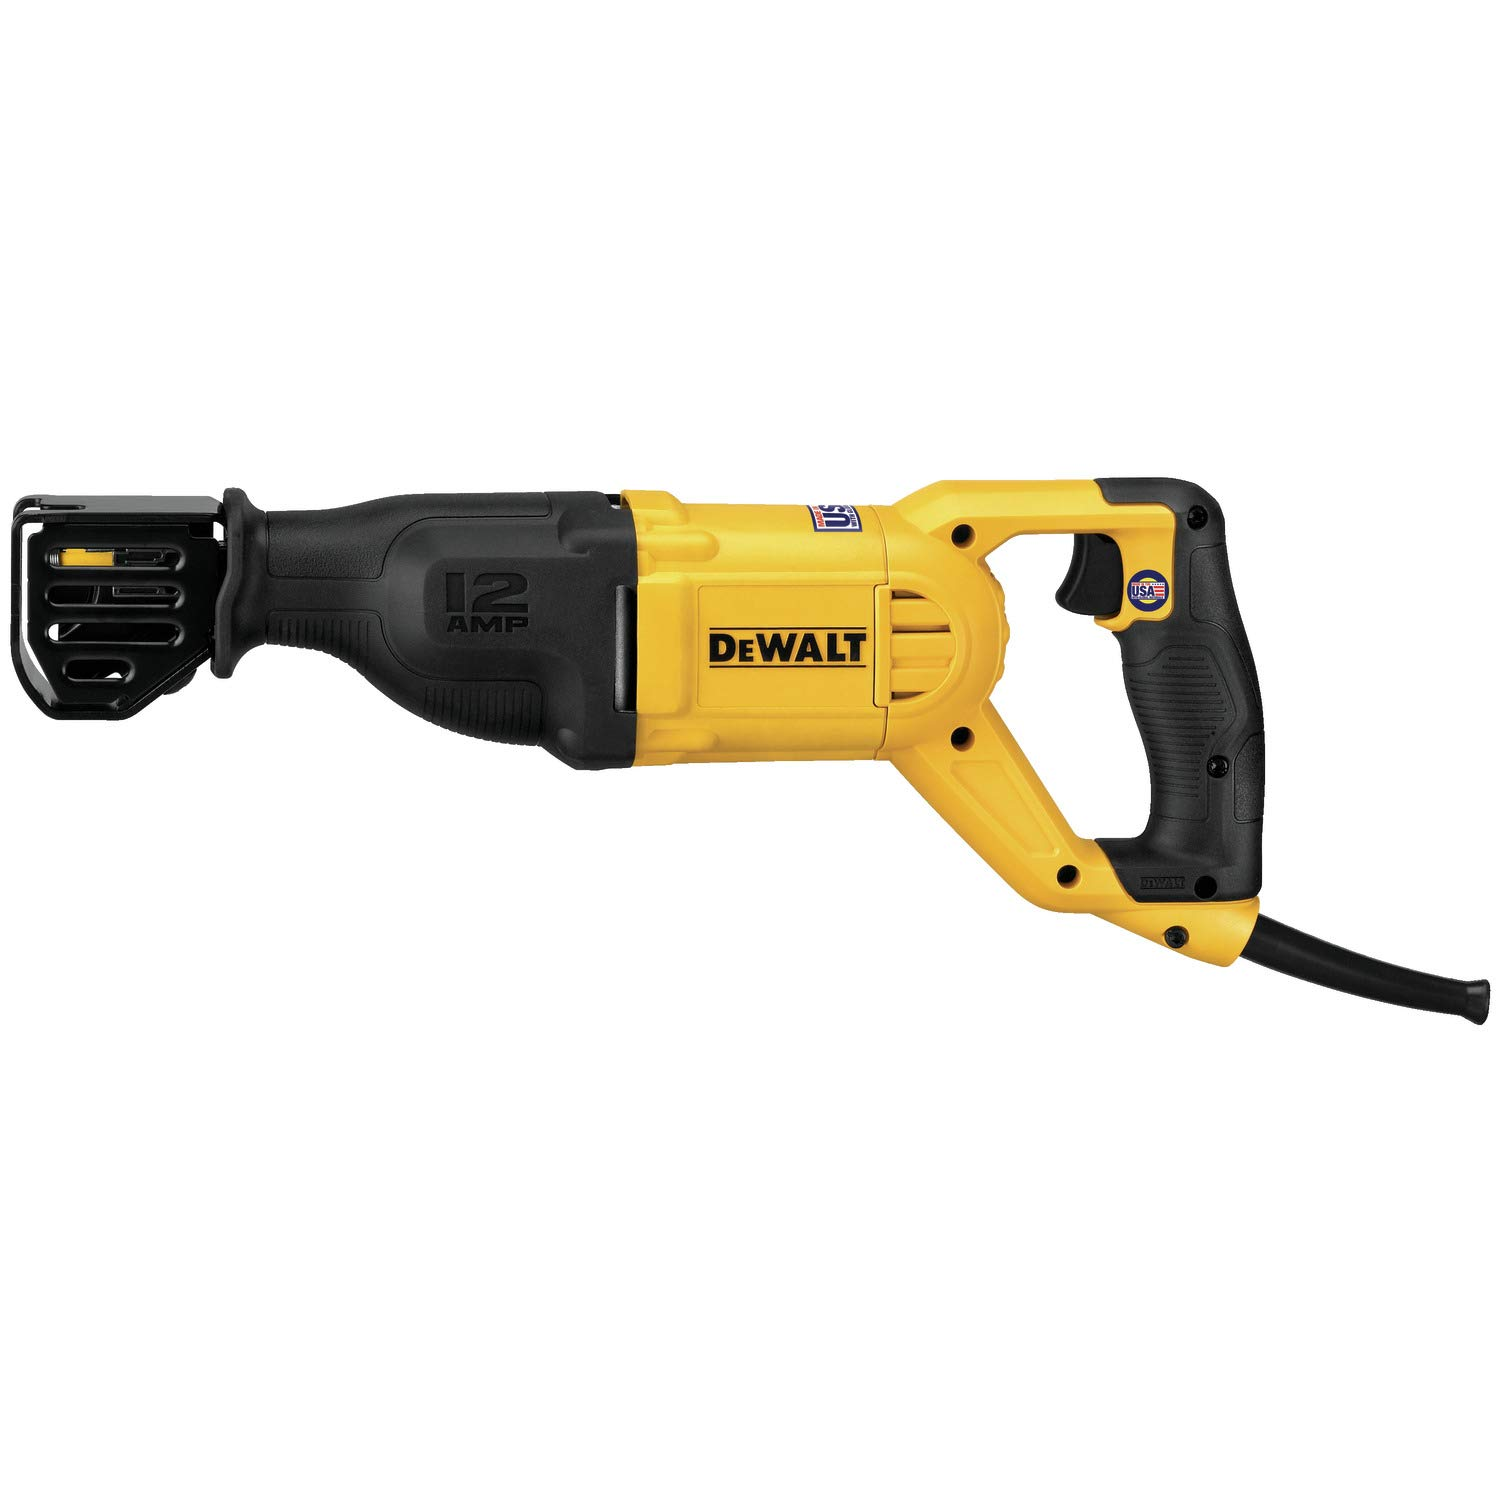 DEWALT DWE305R 12.0 Amp Reciprocating Saw Reconditioned by Manufacturer